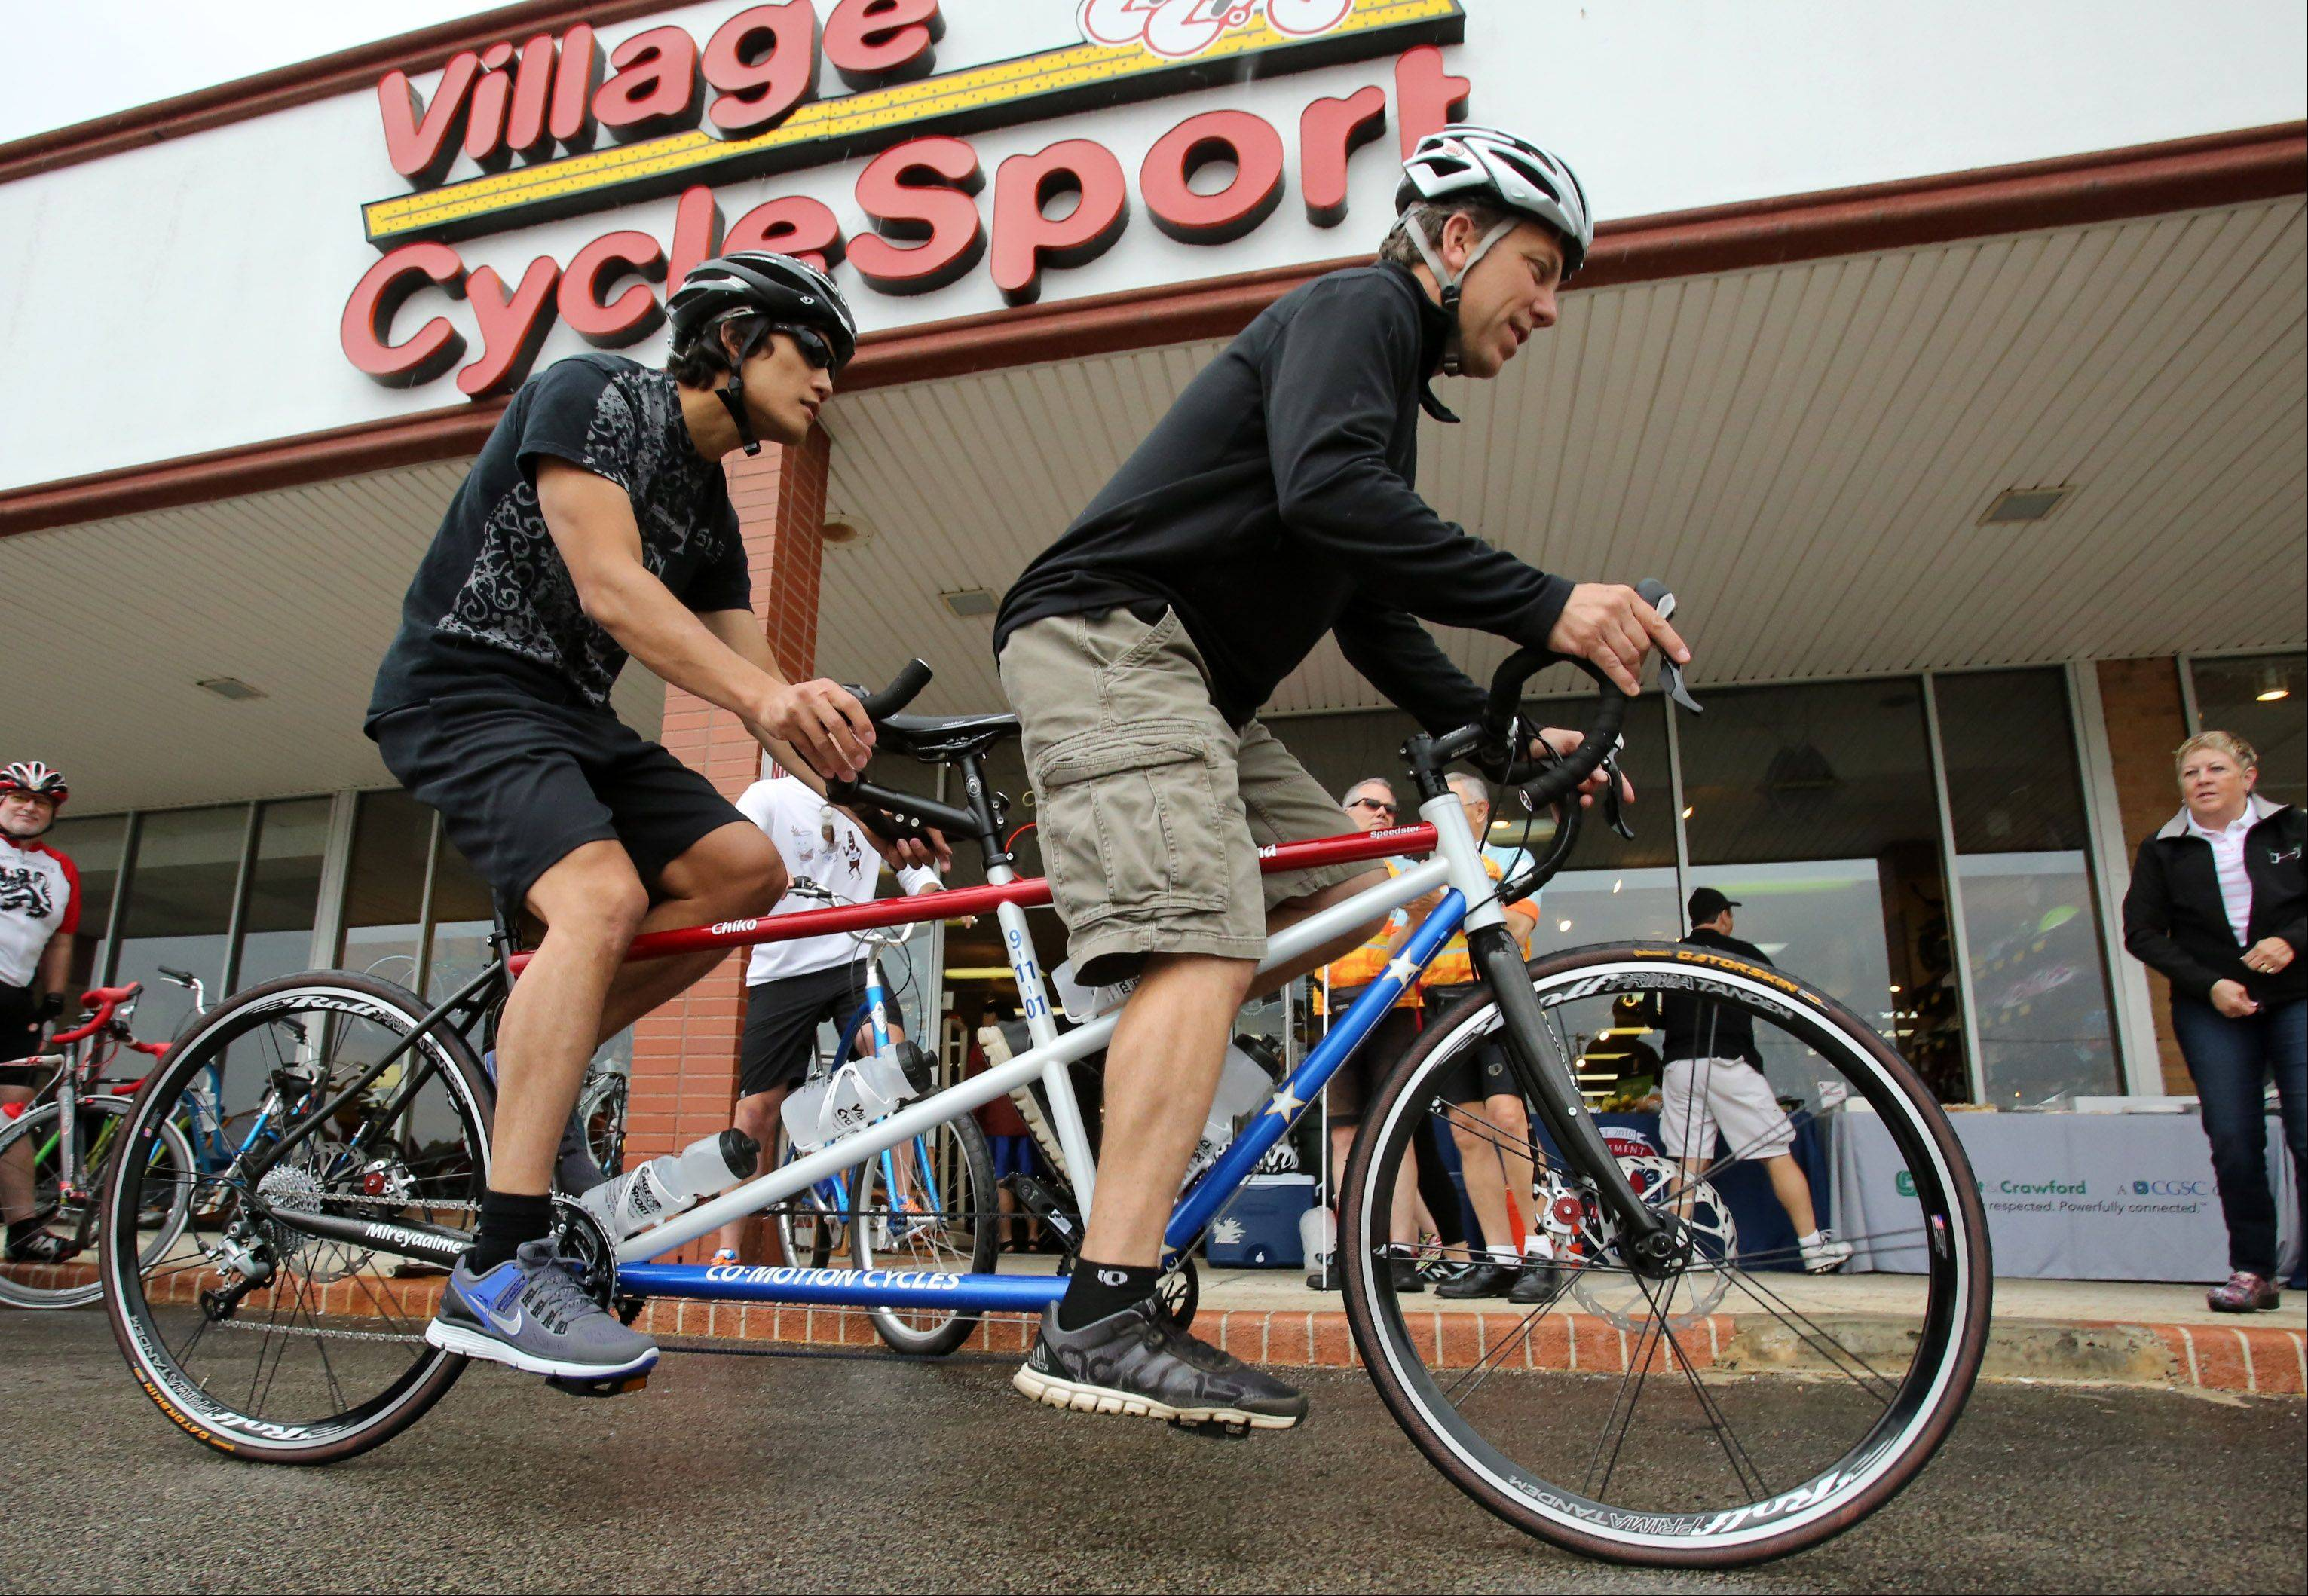 U.S. Army veteran Steve Baskis, left, rides a new competitive tandem bike with Village CycleSport co-owner Vince Boyer Saturday after the bike was donated to him by insurance company Swett & Crawford.